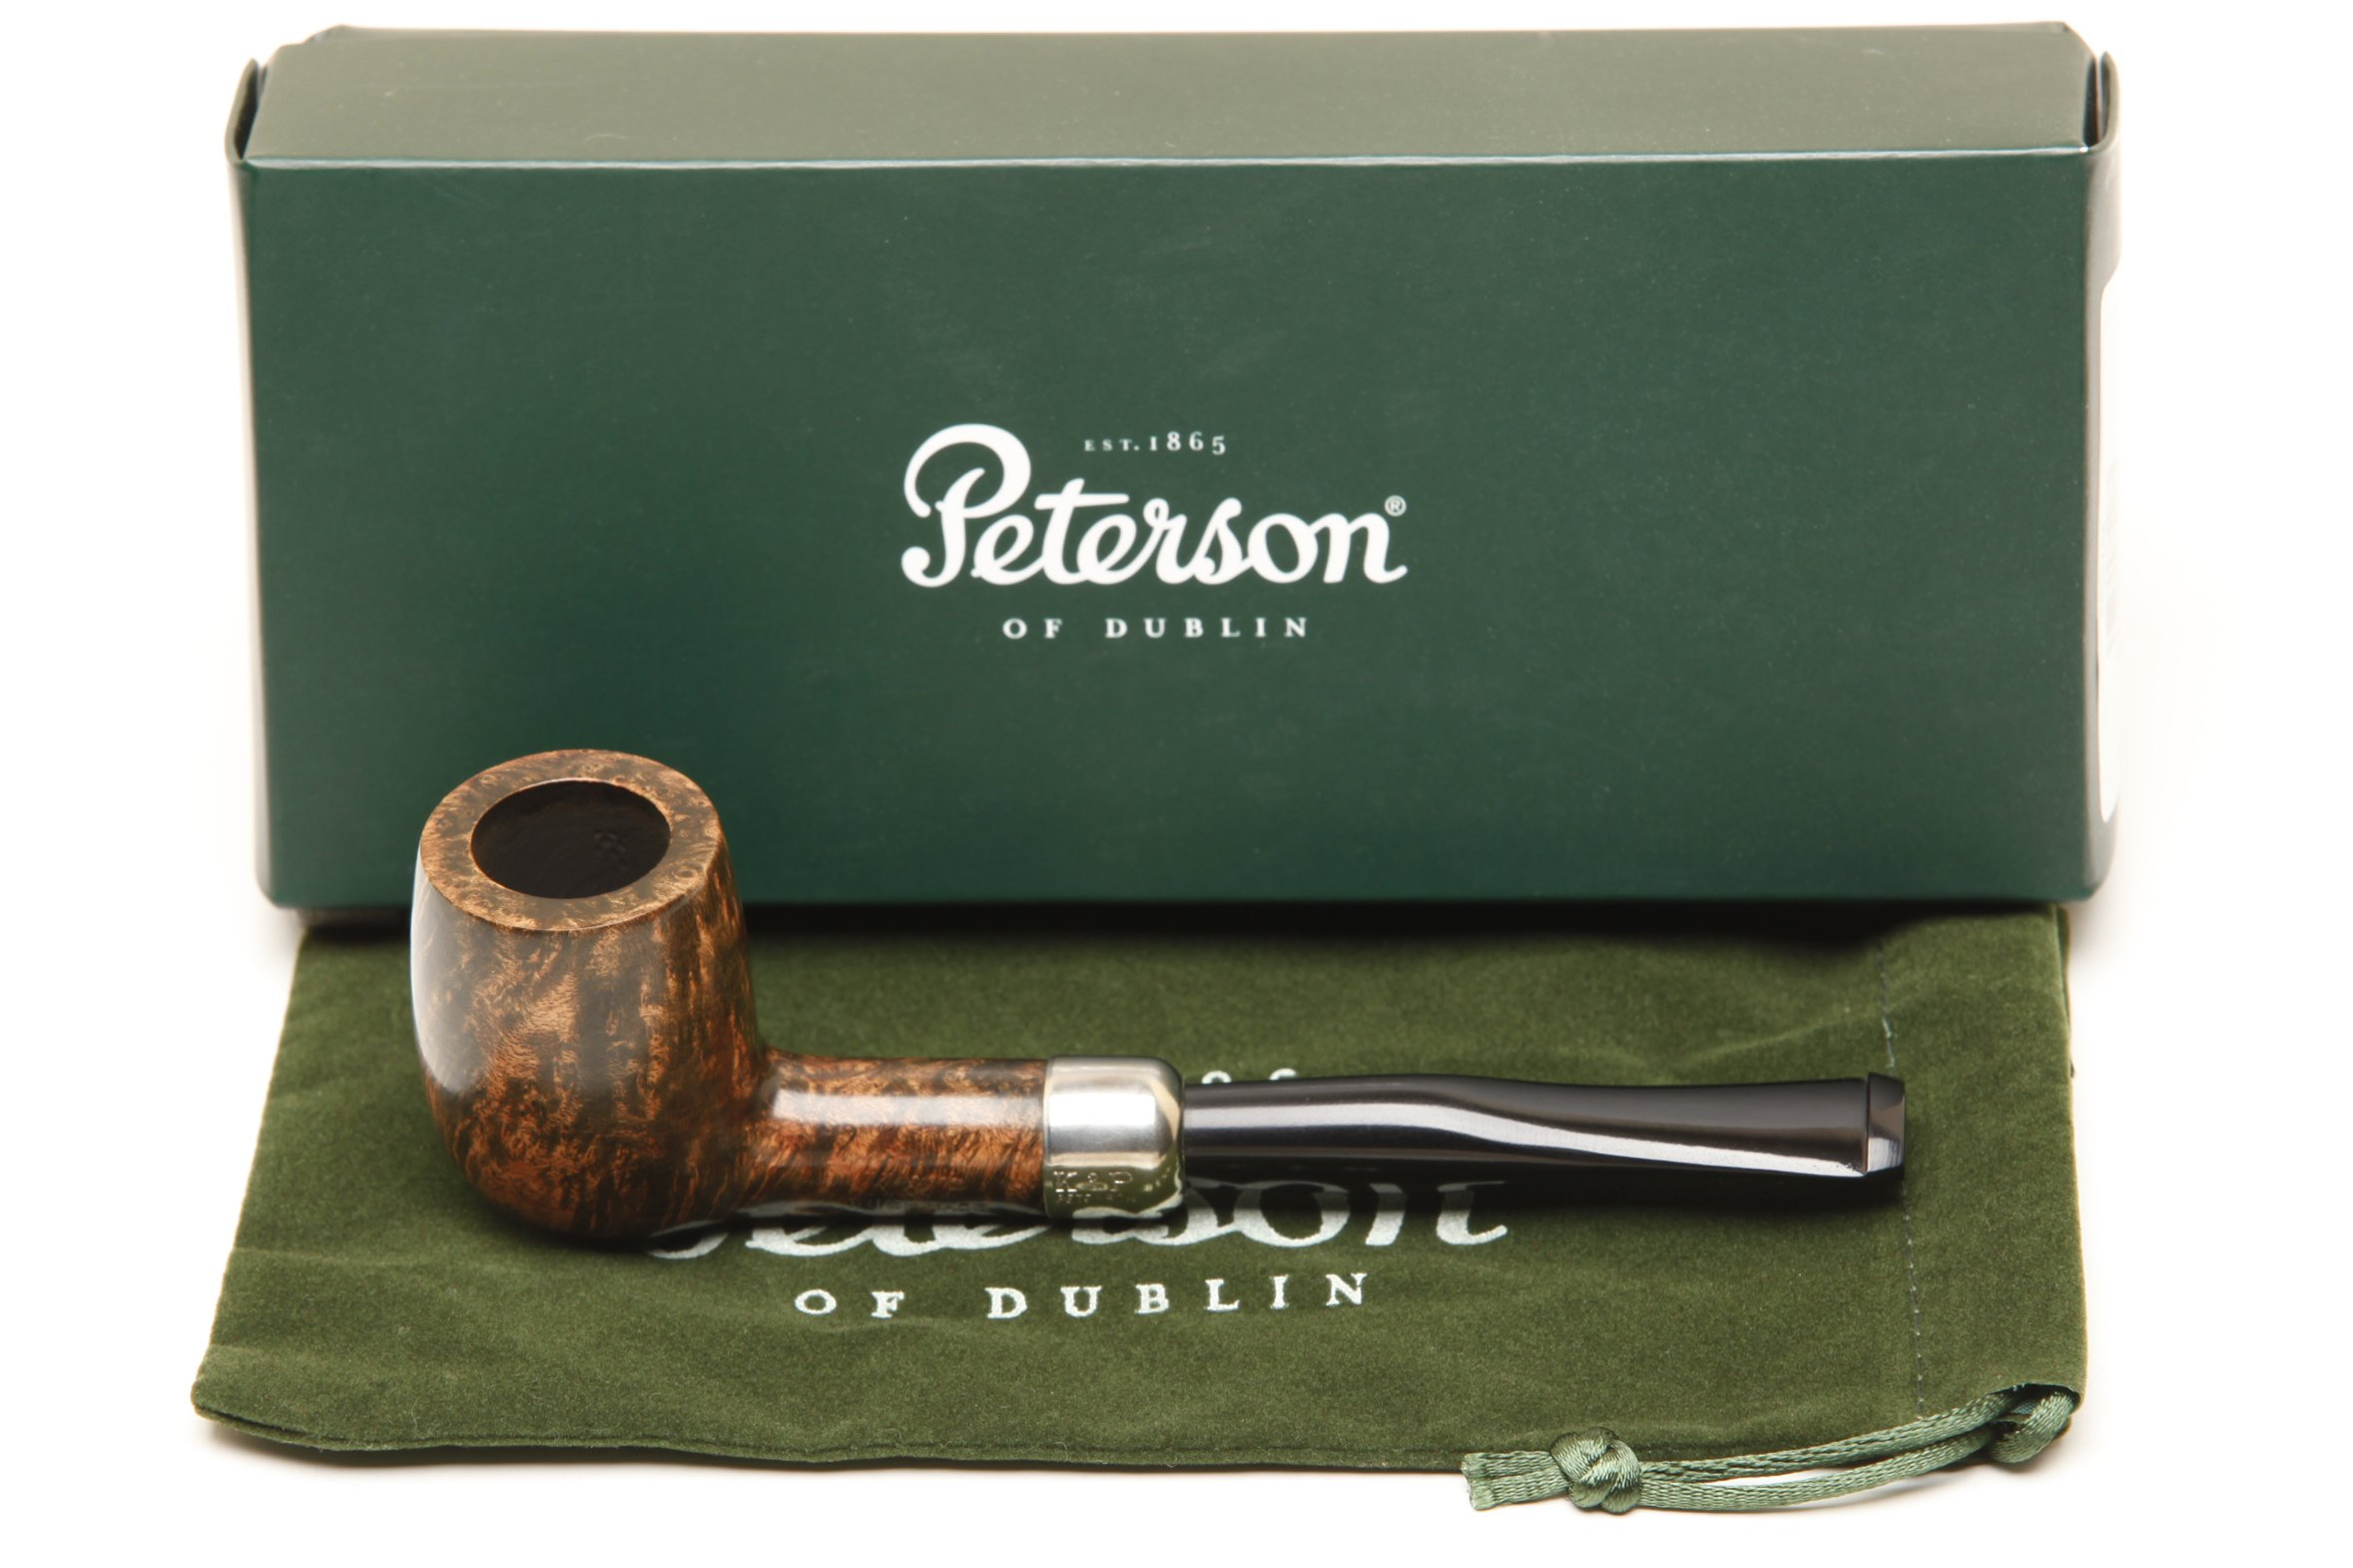 Peterson Irish Made Army 102 Tobacco Pipe - Fishtail by Peterson (Image #1)